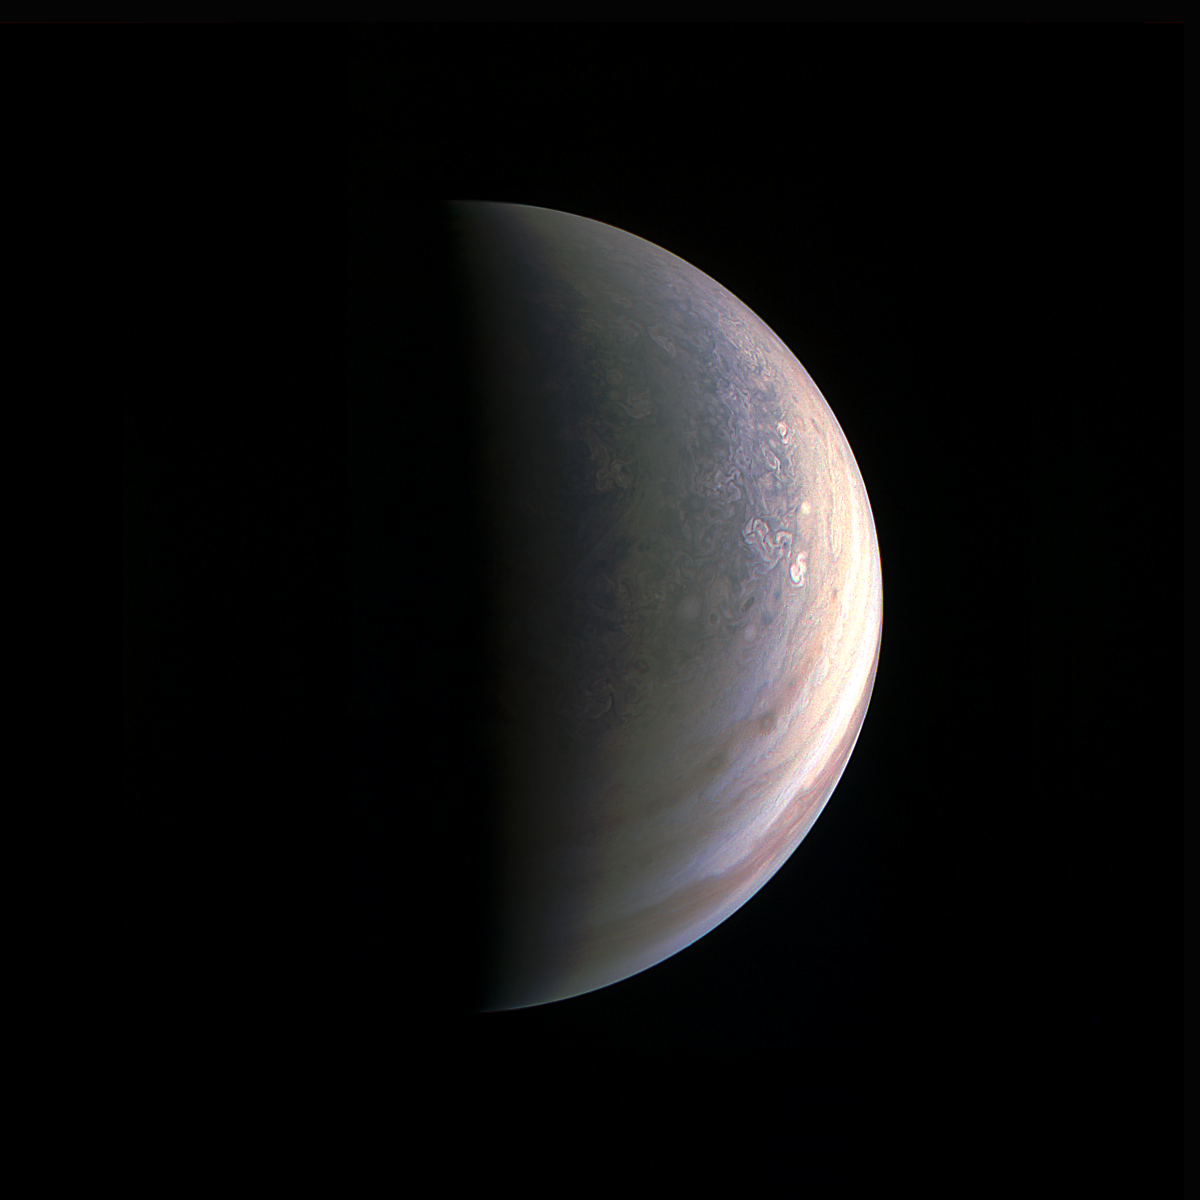 Jupiter's North Pole as photographed from the Juno spacecraft.